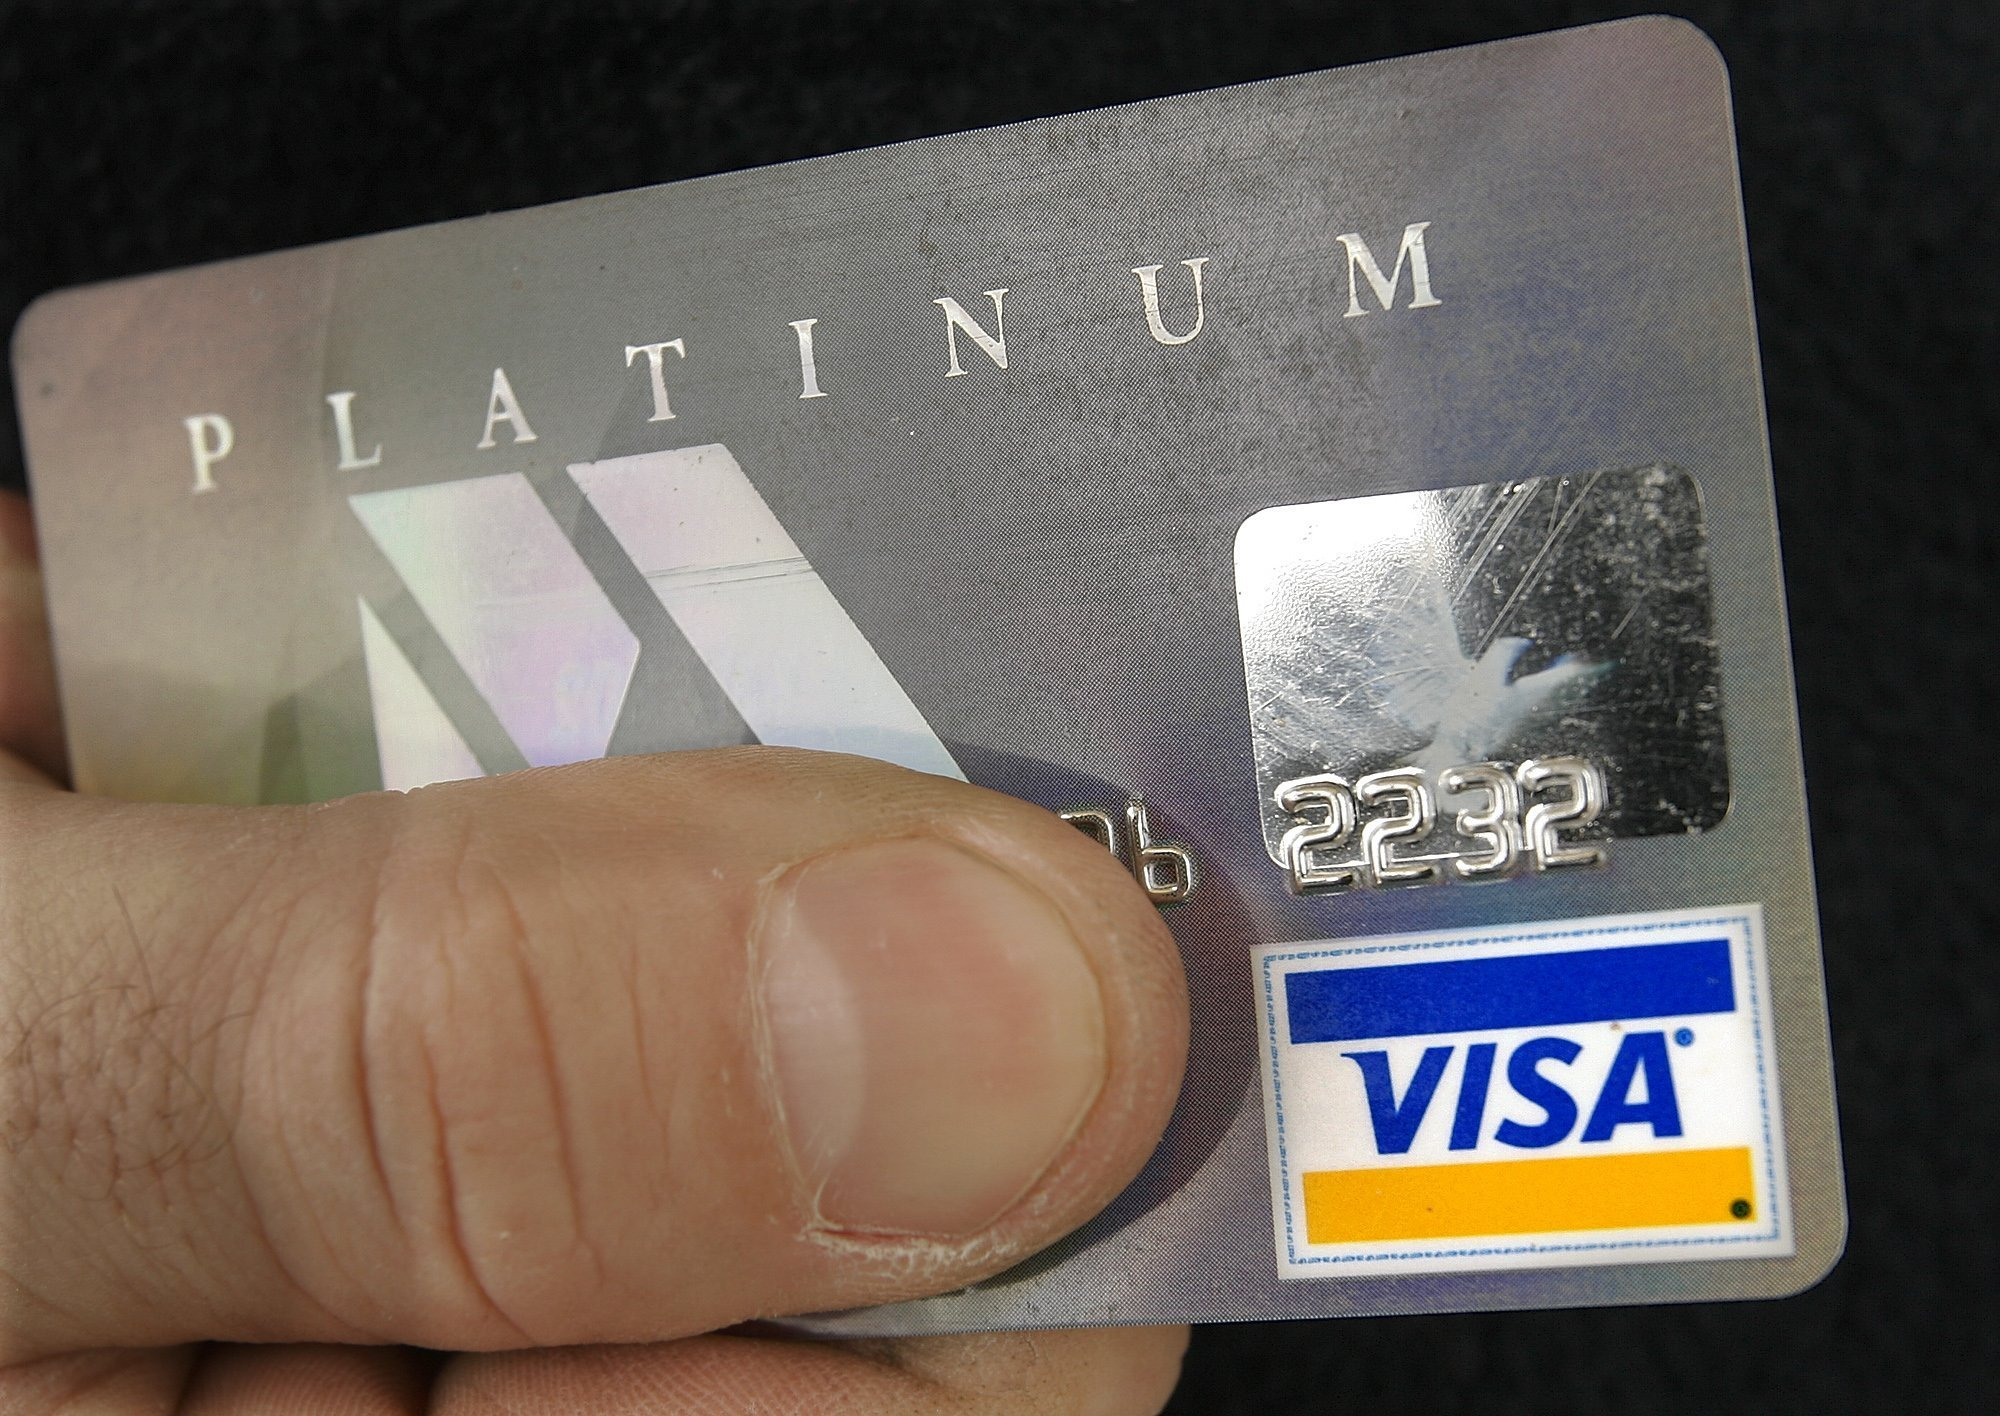 to bat fraud visa wants to track your smartphone la times